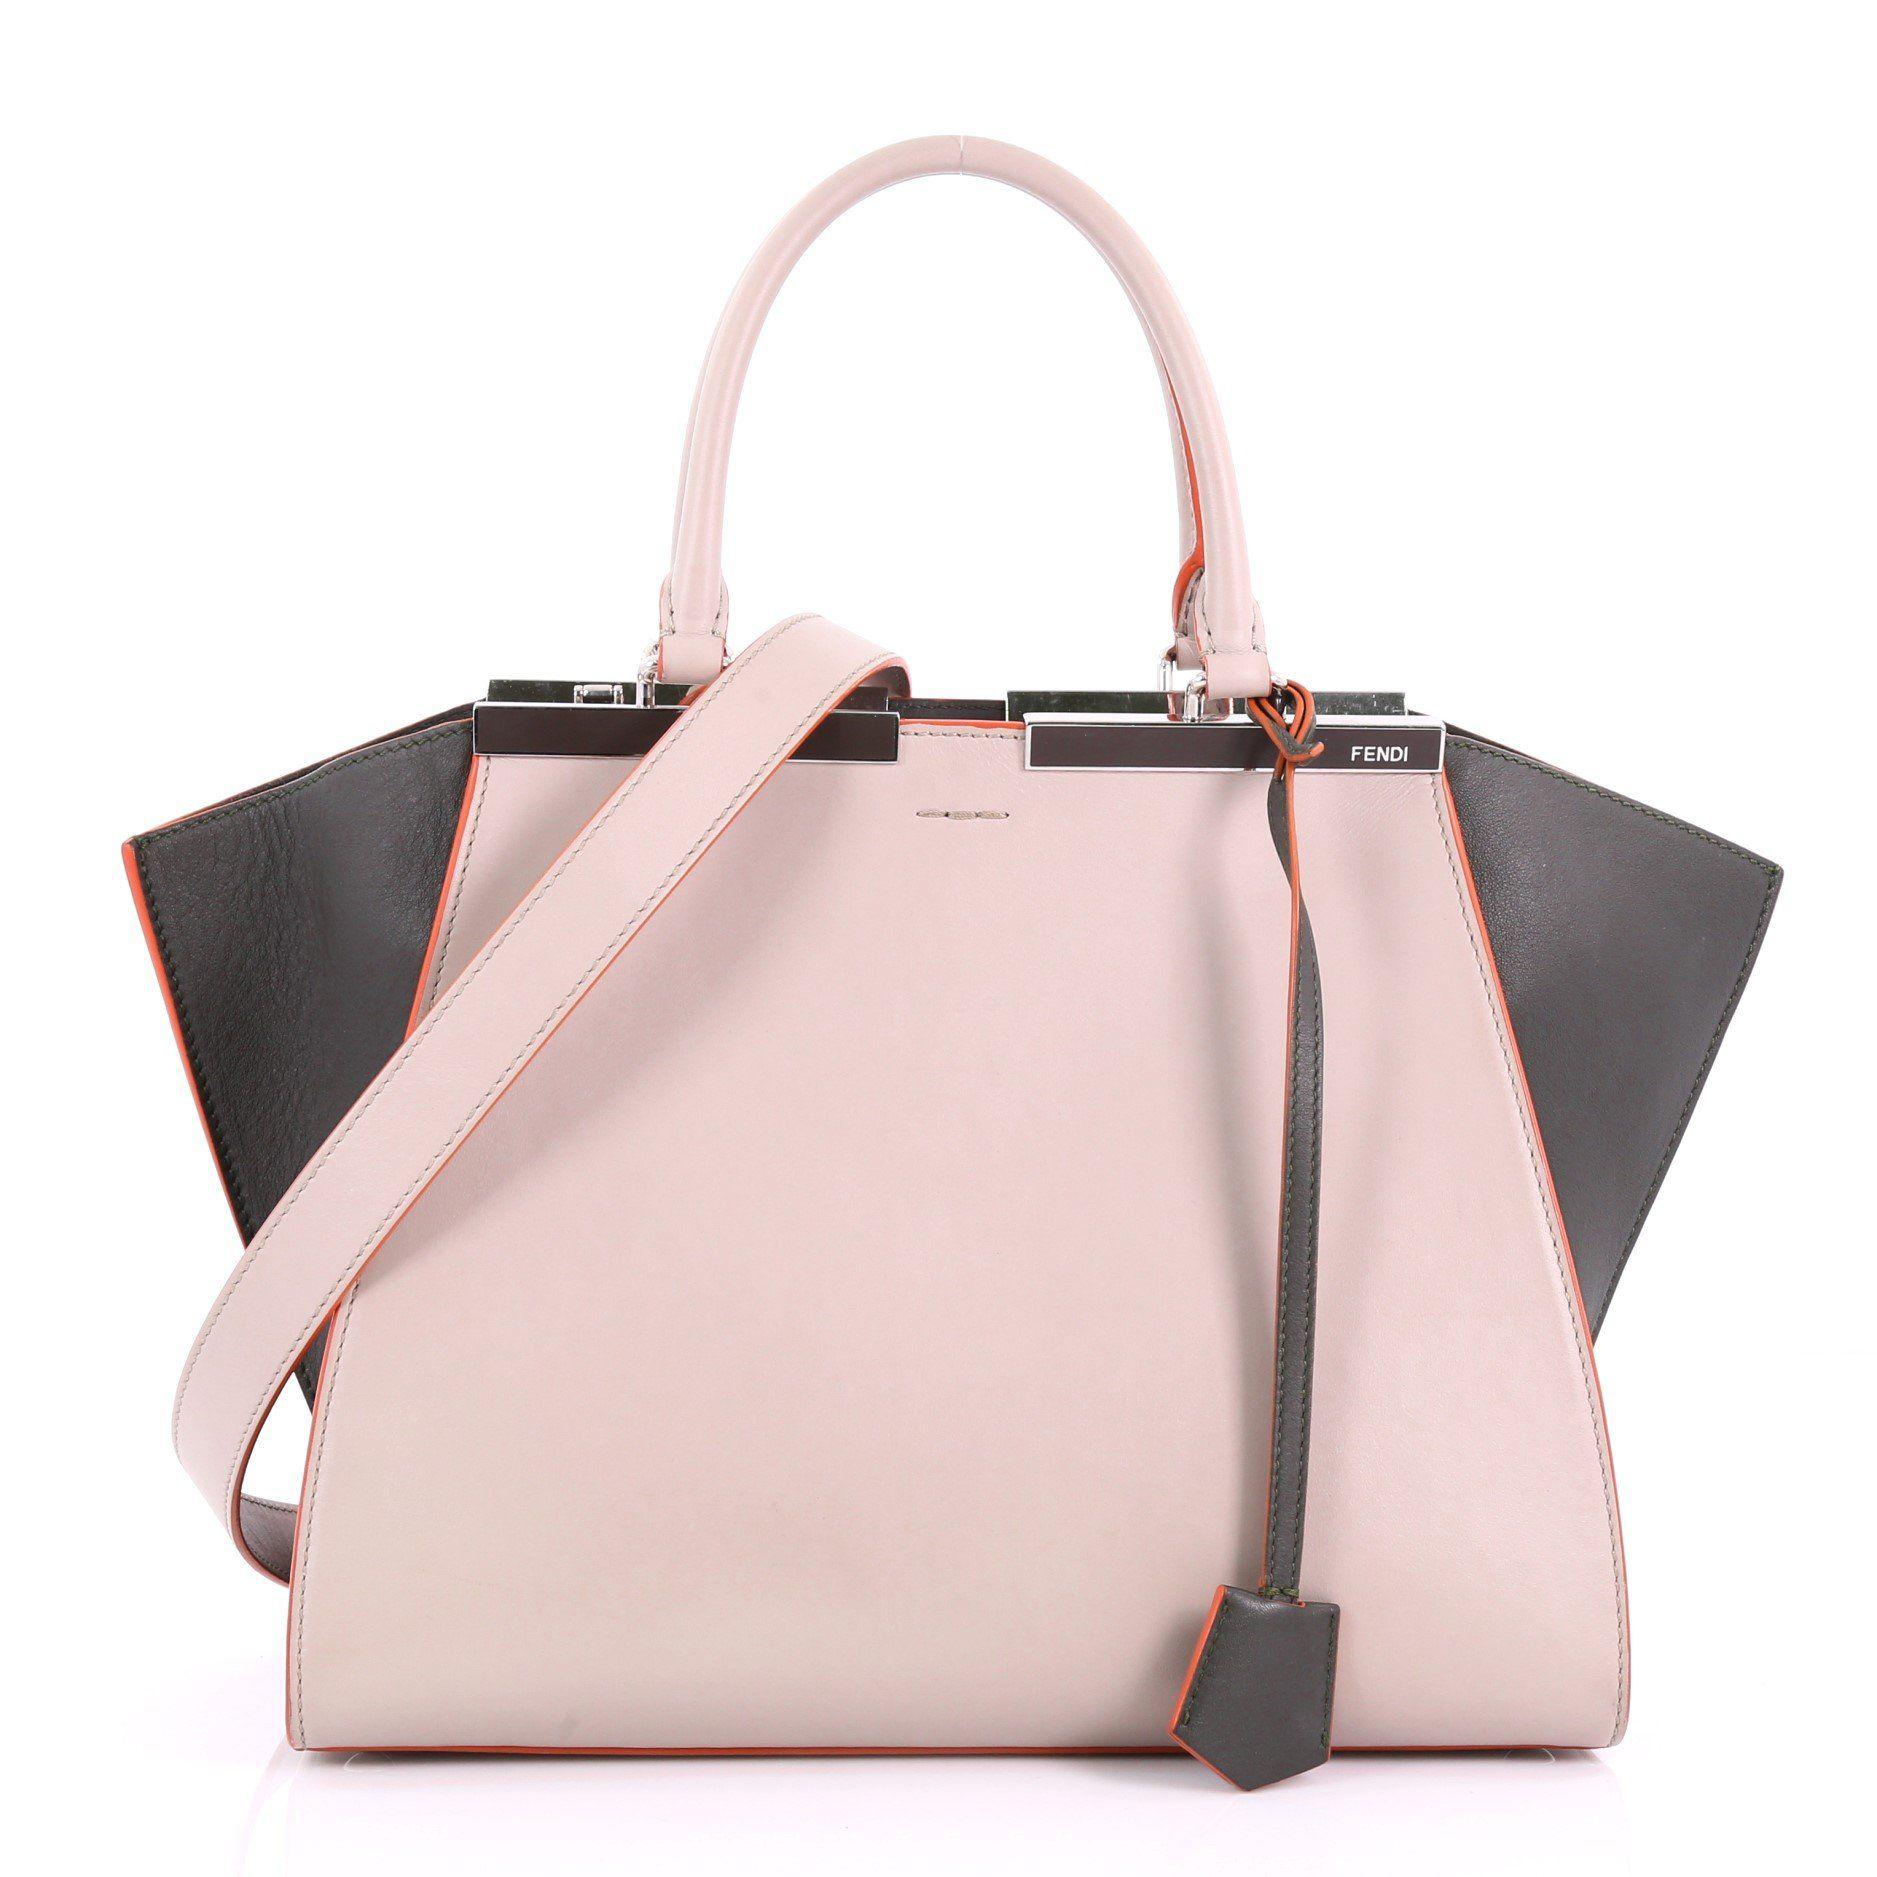 ba525c021e2a Lyst - Fendi Pre Owned Petite 3jours Handbag Leather in Pink